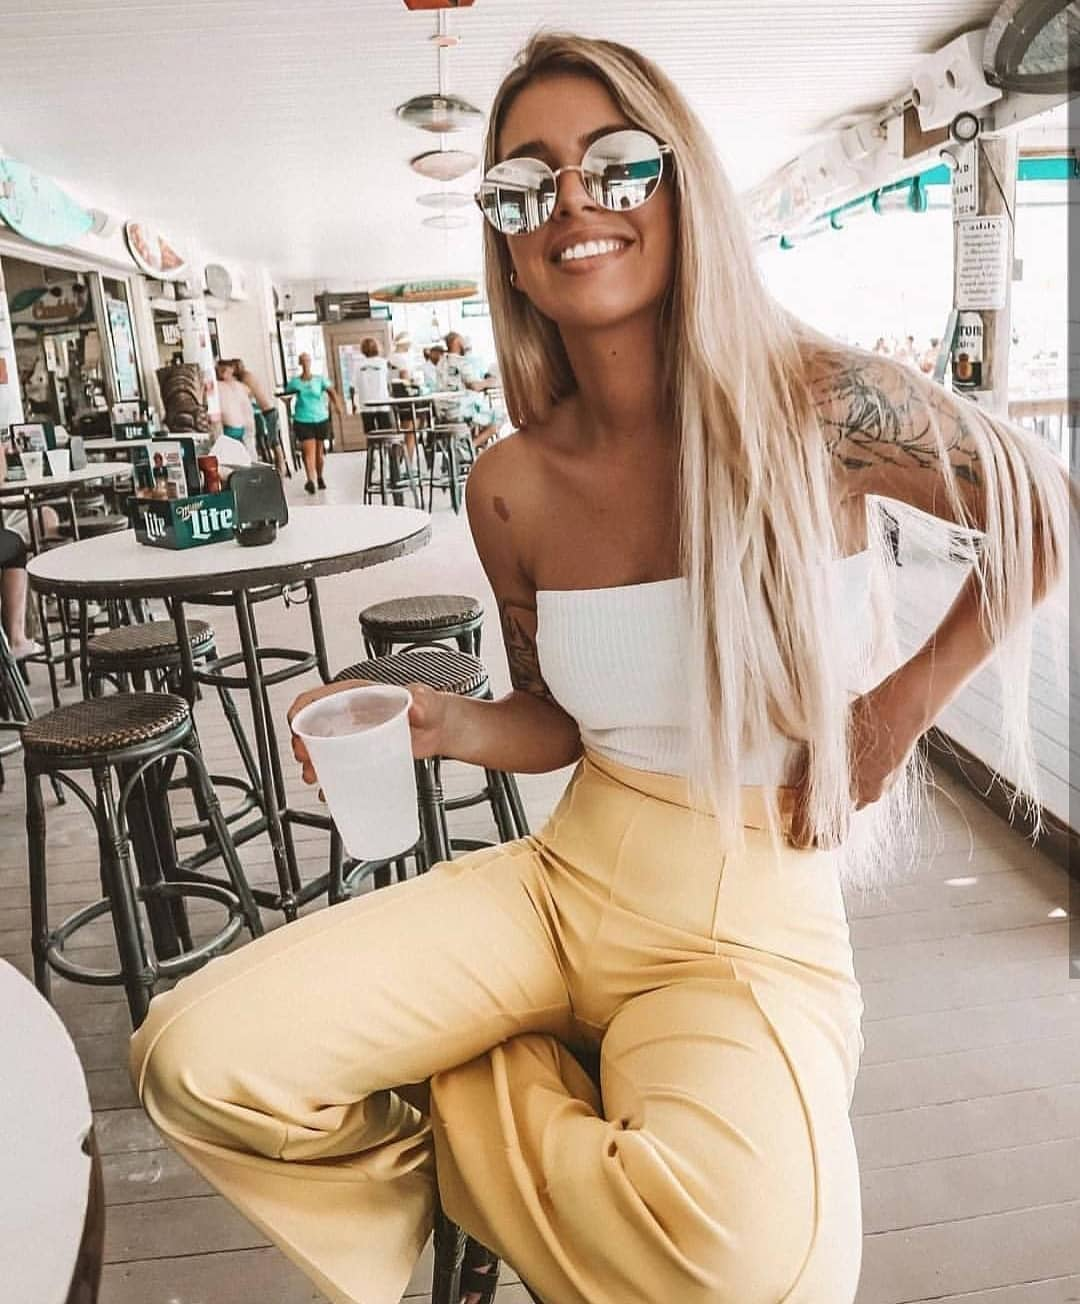 High Rise Pastel Yellow Pants And White Strapless Top For Summer 2019